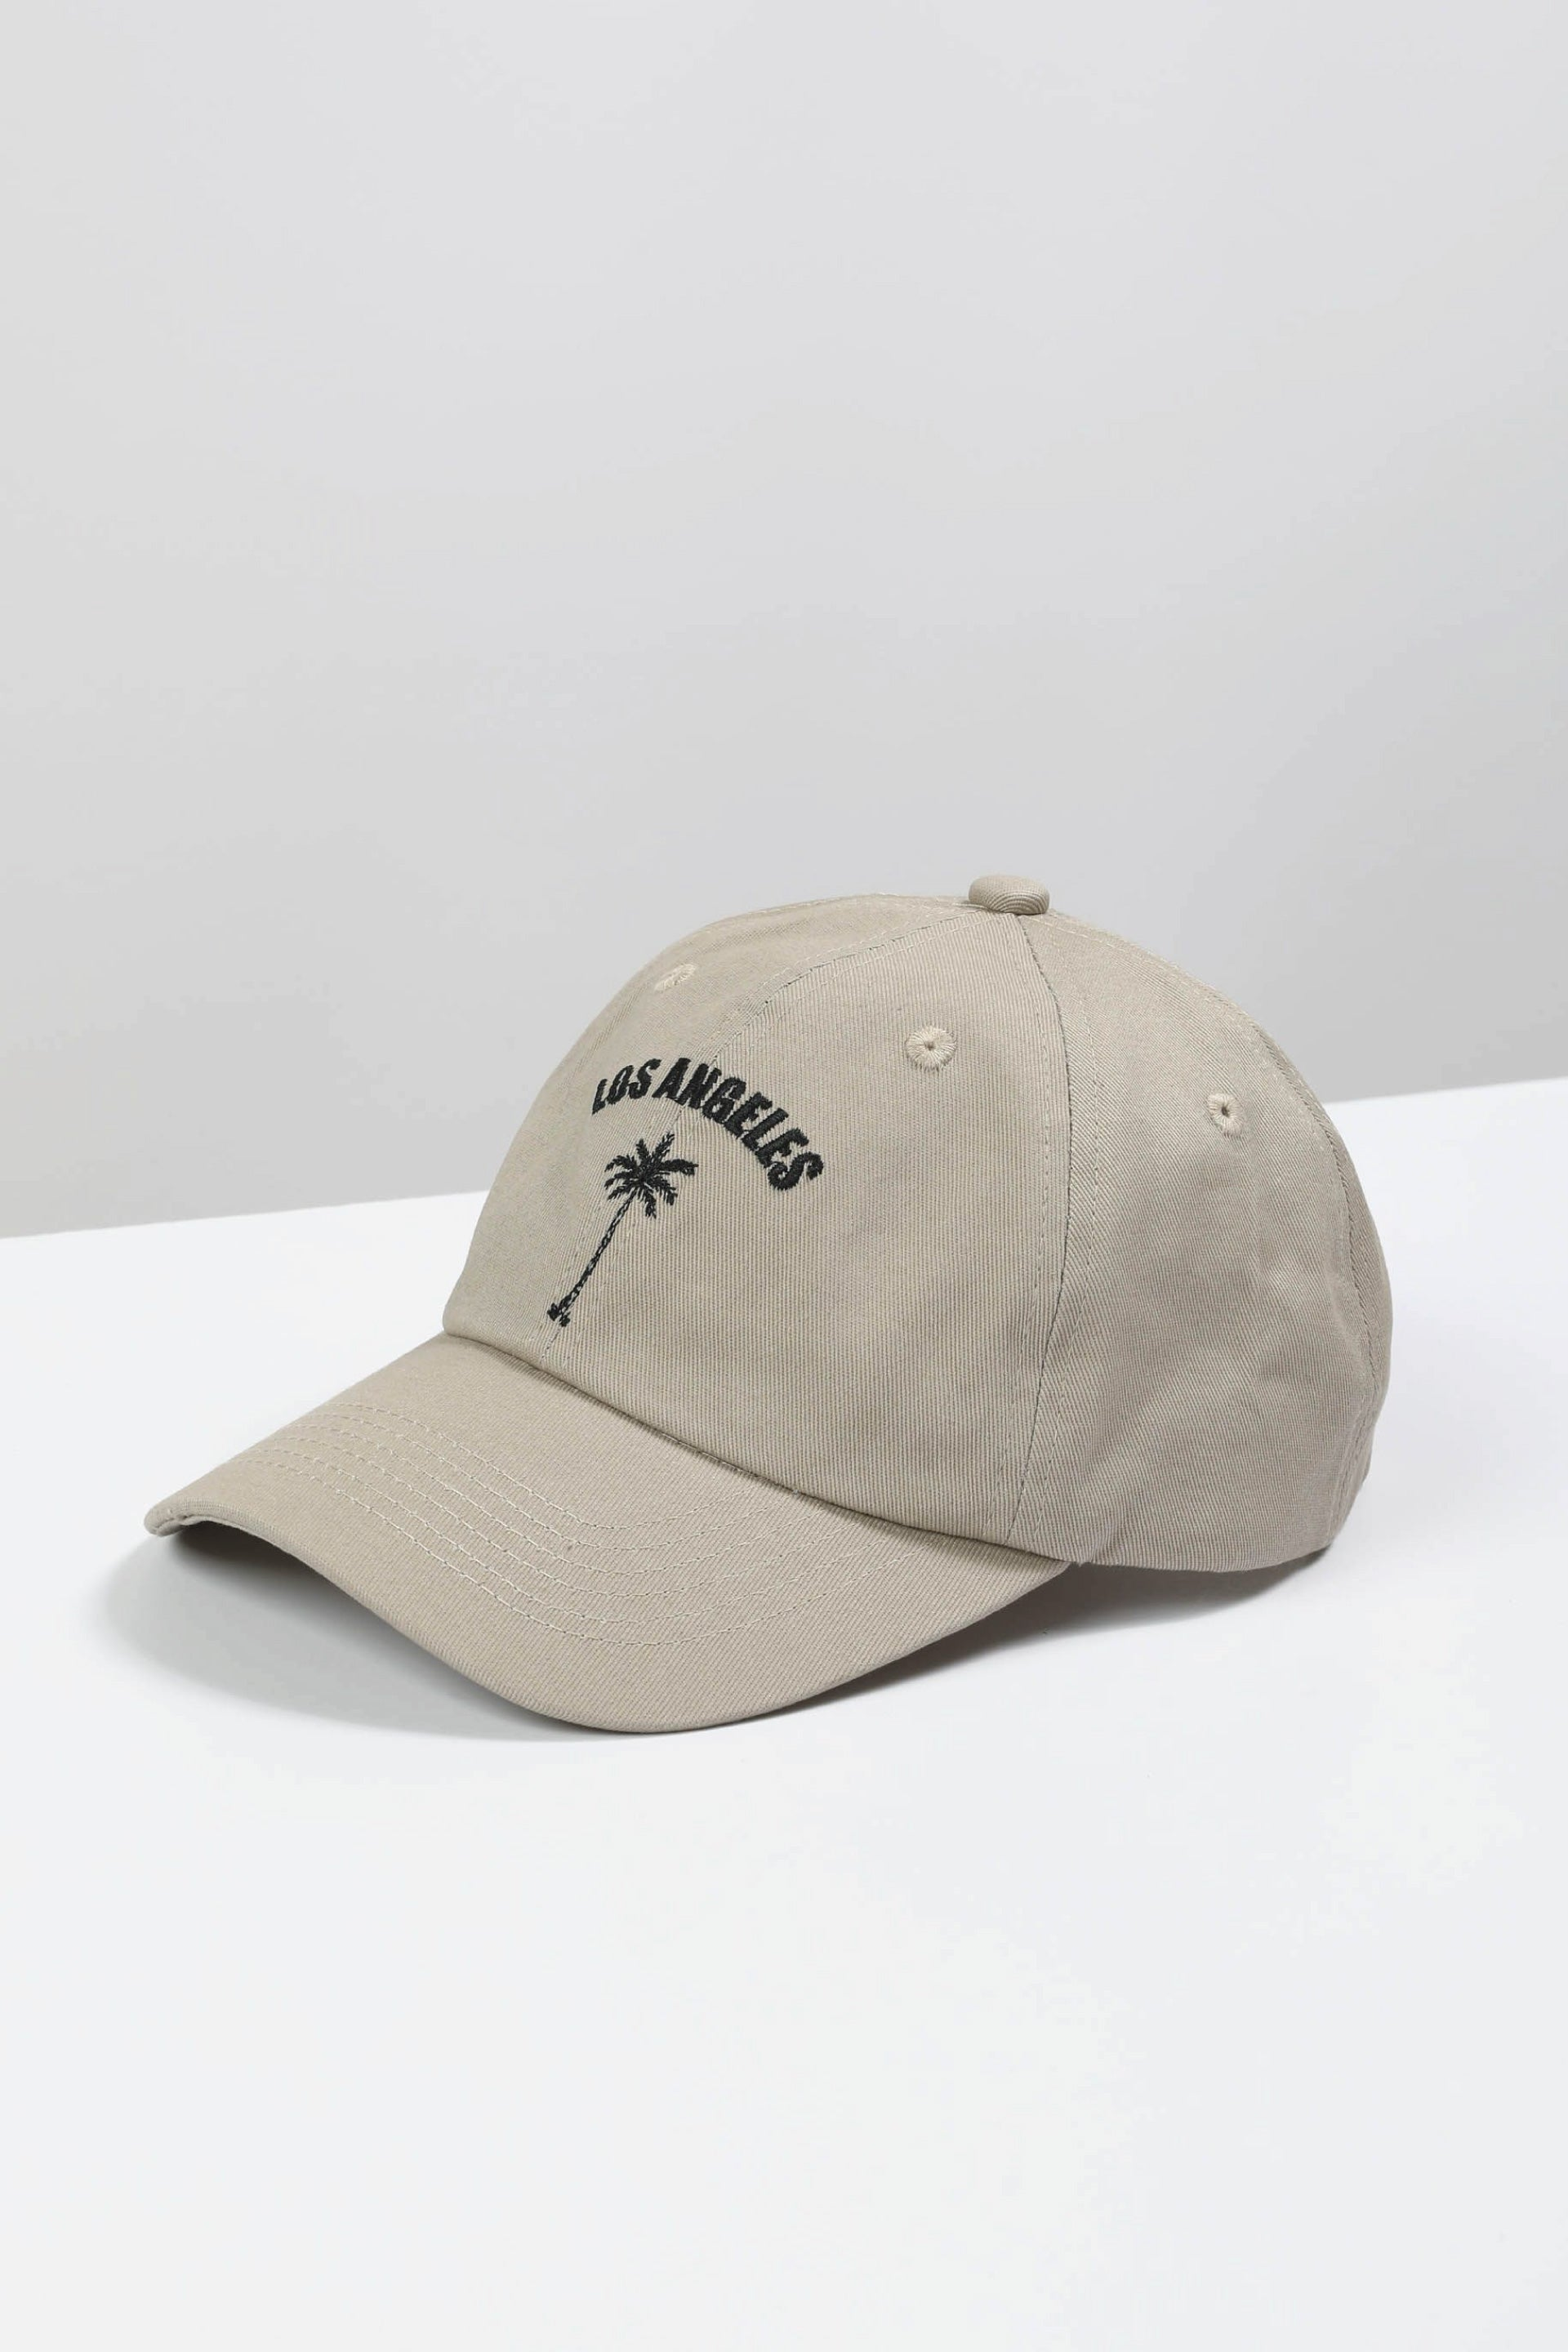 Los Angeles Beige Dads Cap